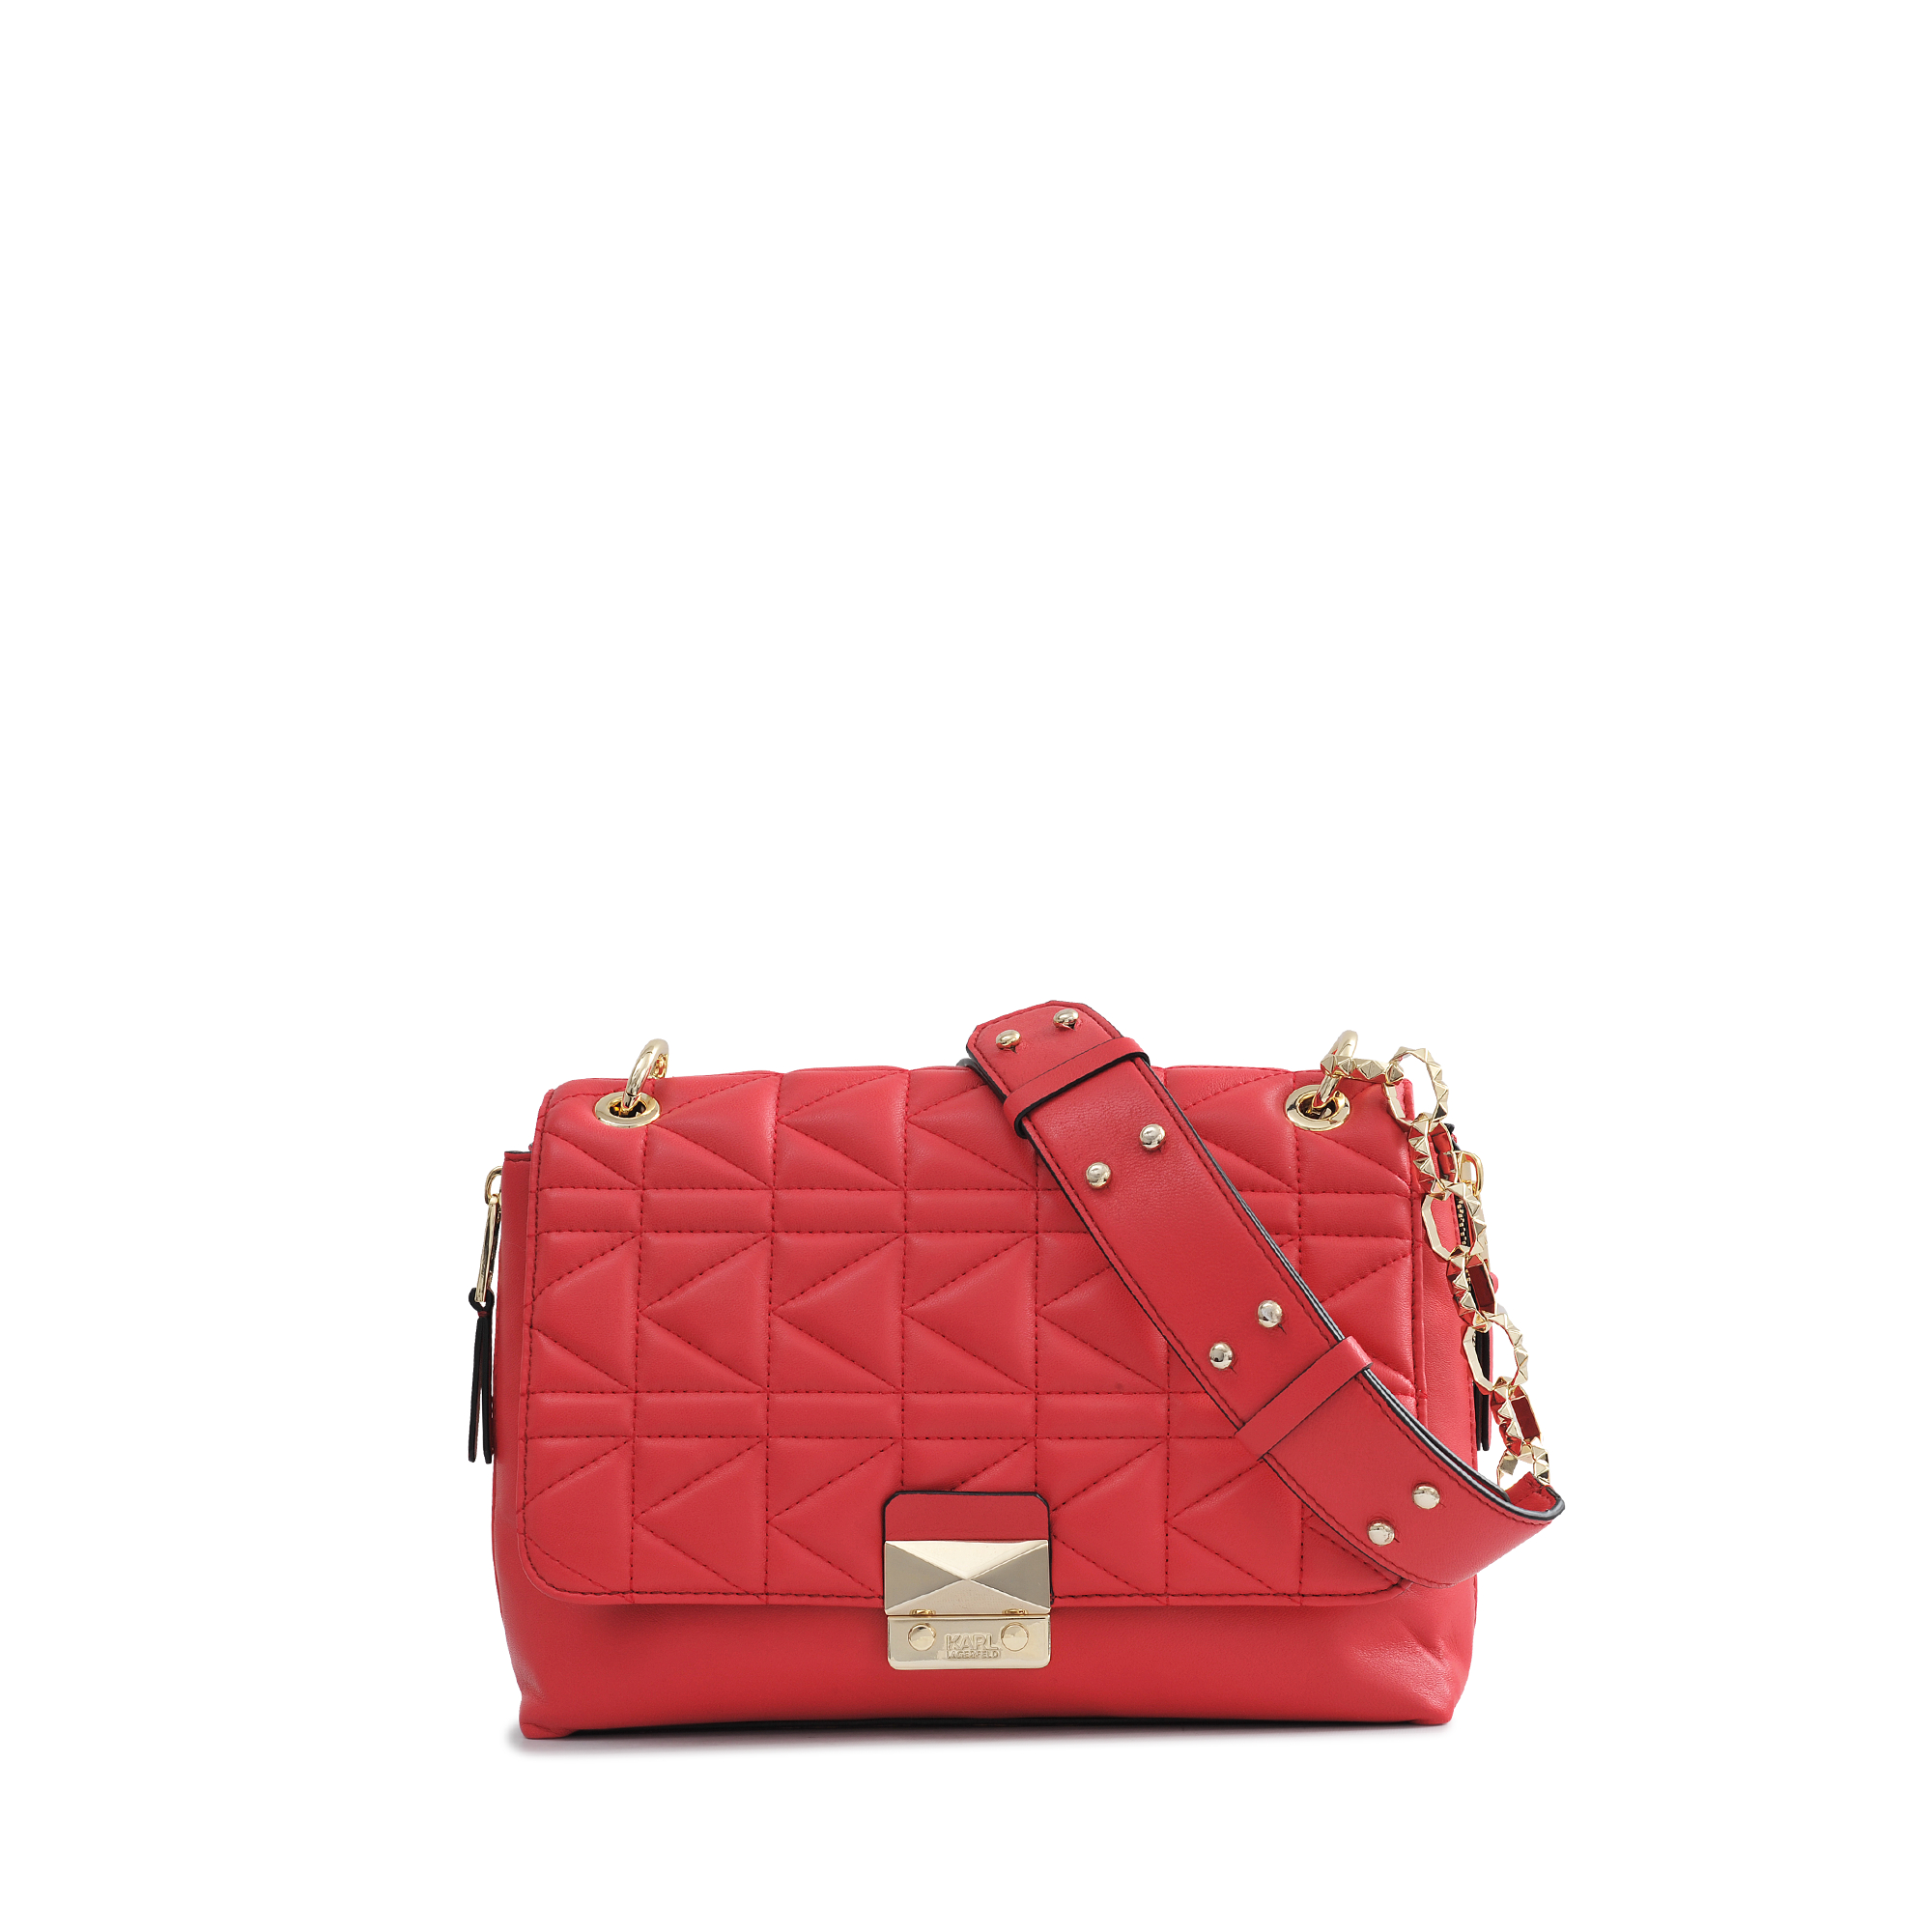 Karl lagerfeld Kuilted Flap Bag in Red  5f41c1cab0768